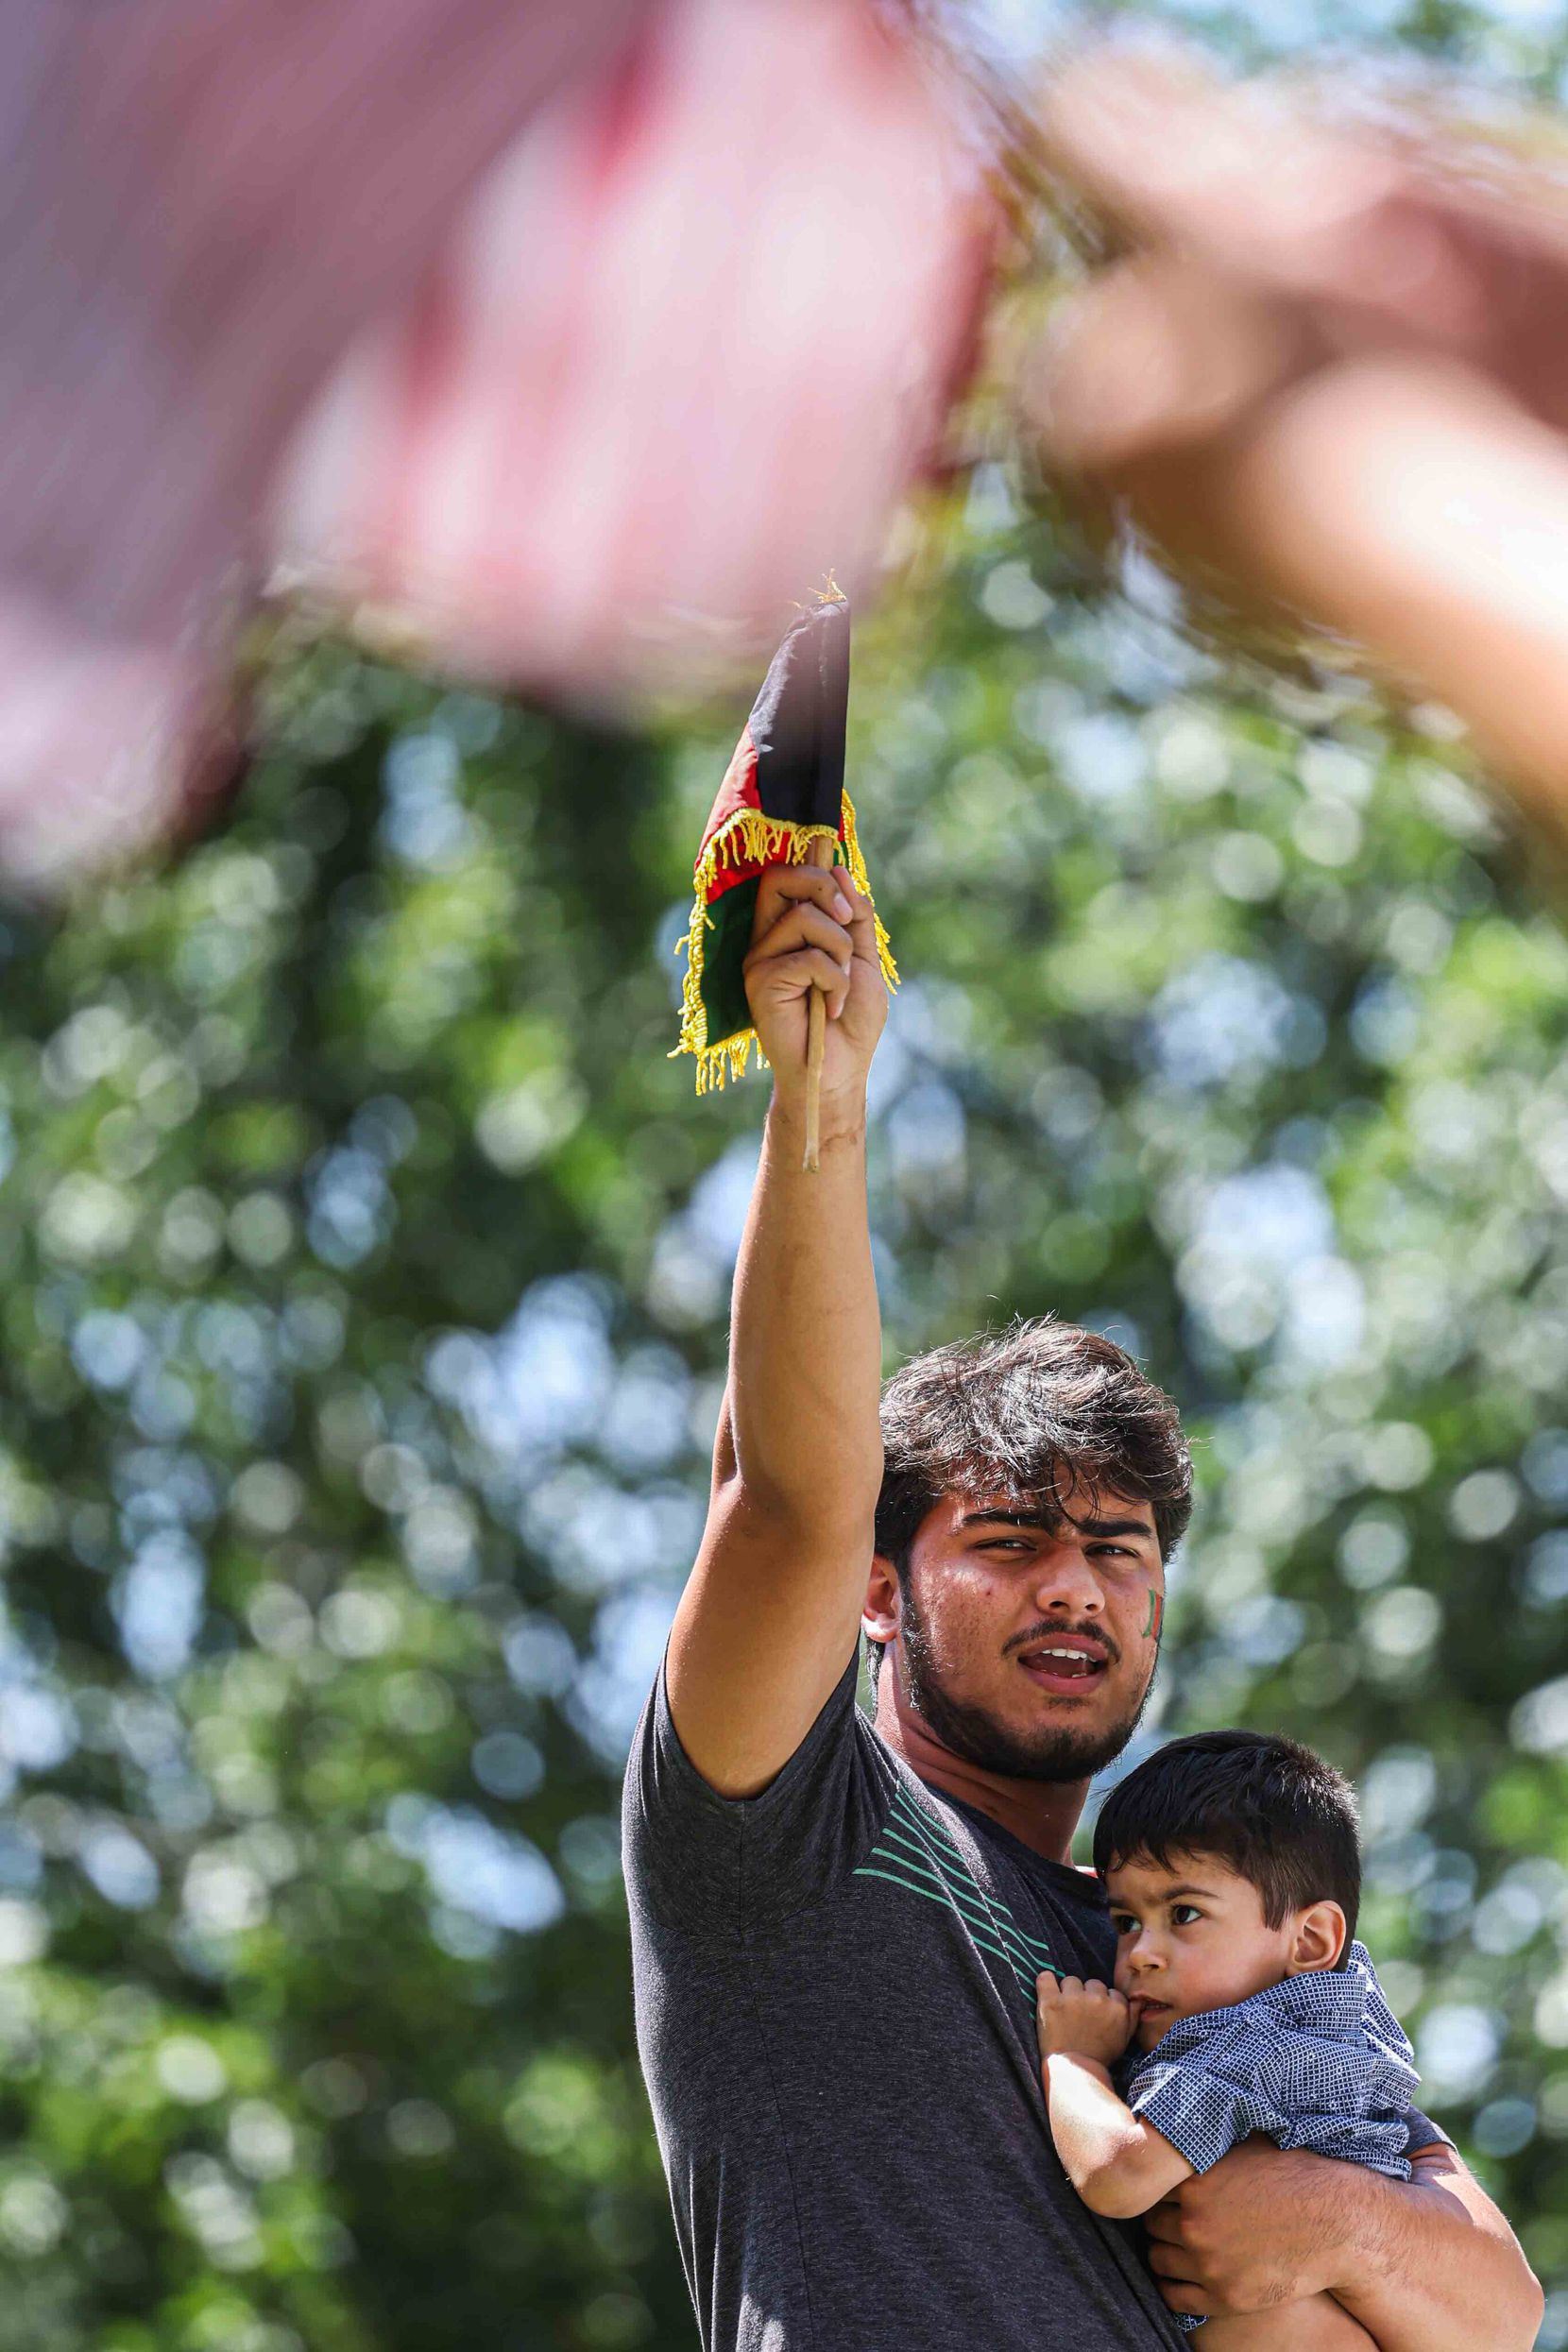 Mohammad Mahbobyar, 19, who said he is a refugee from Afghanistan, was at the rally with his 1-year-old nephew, Suvan Yasiney.